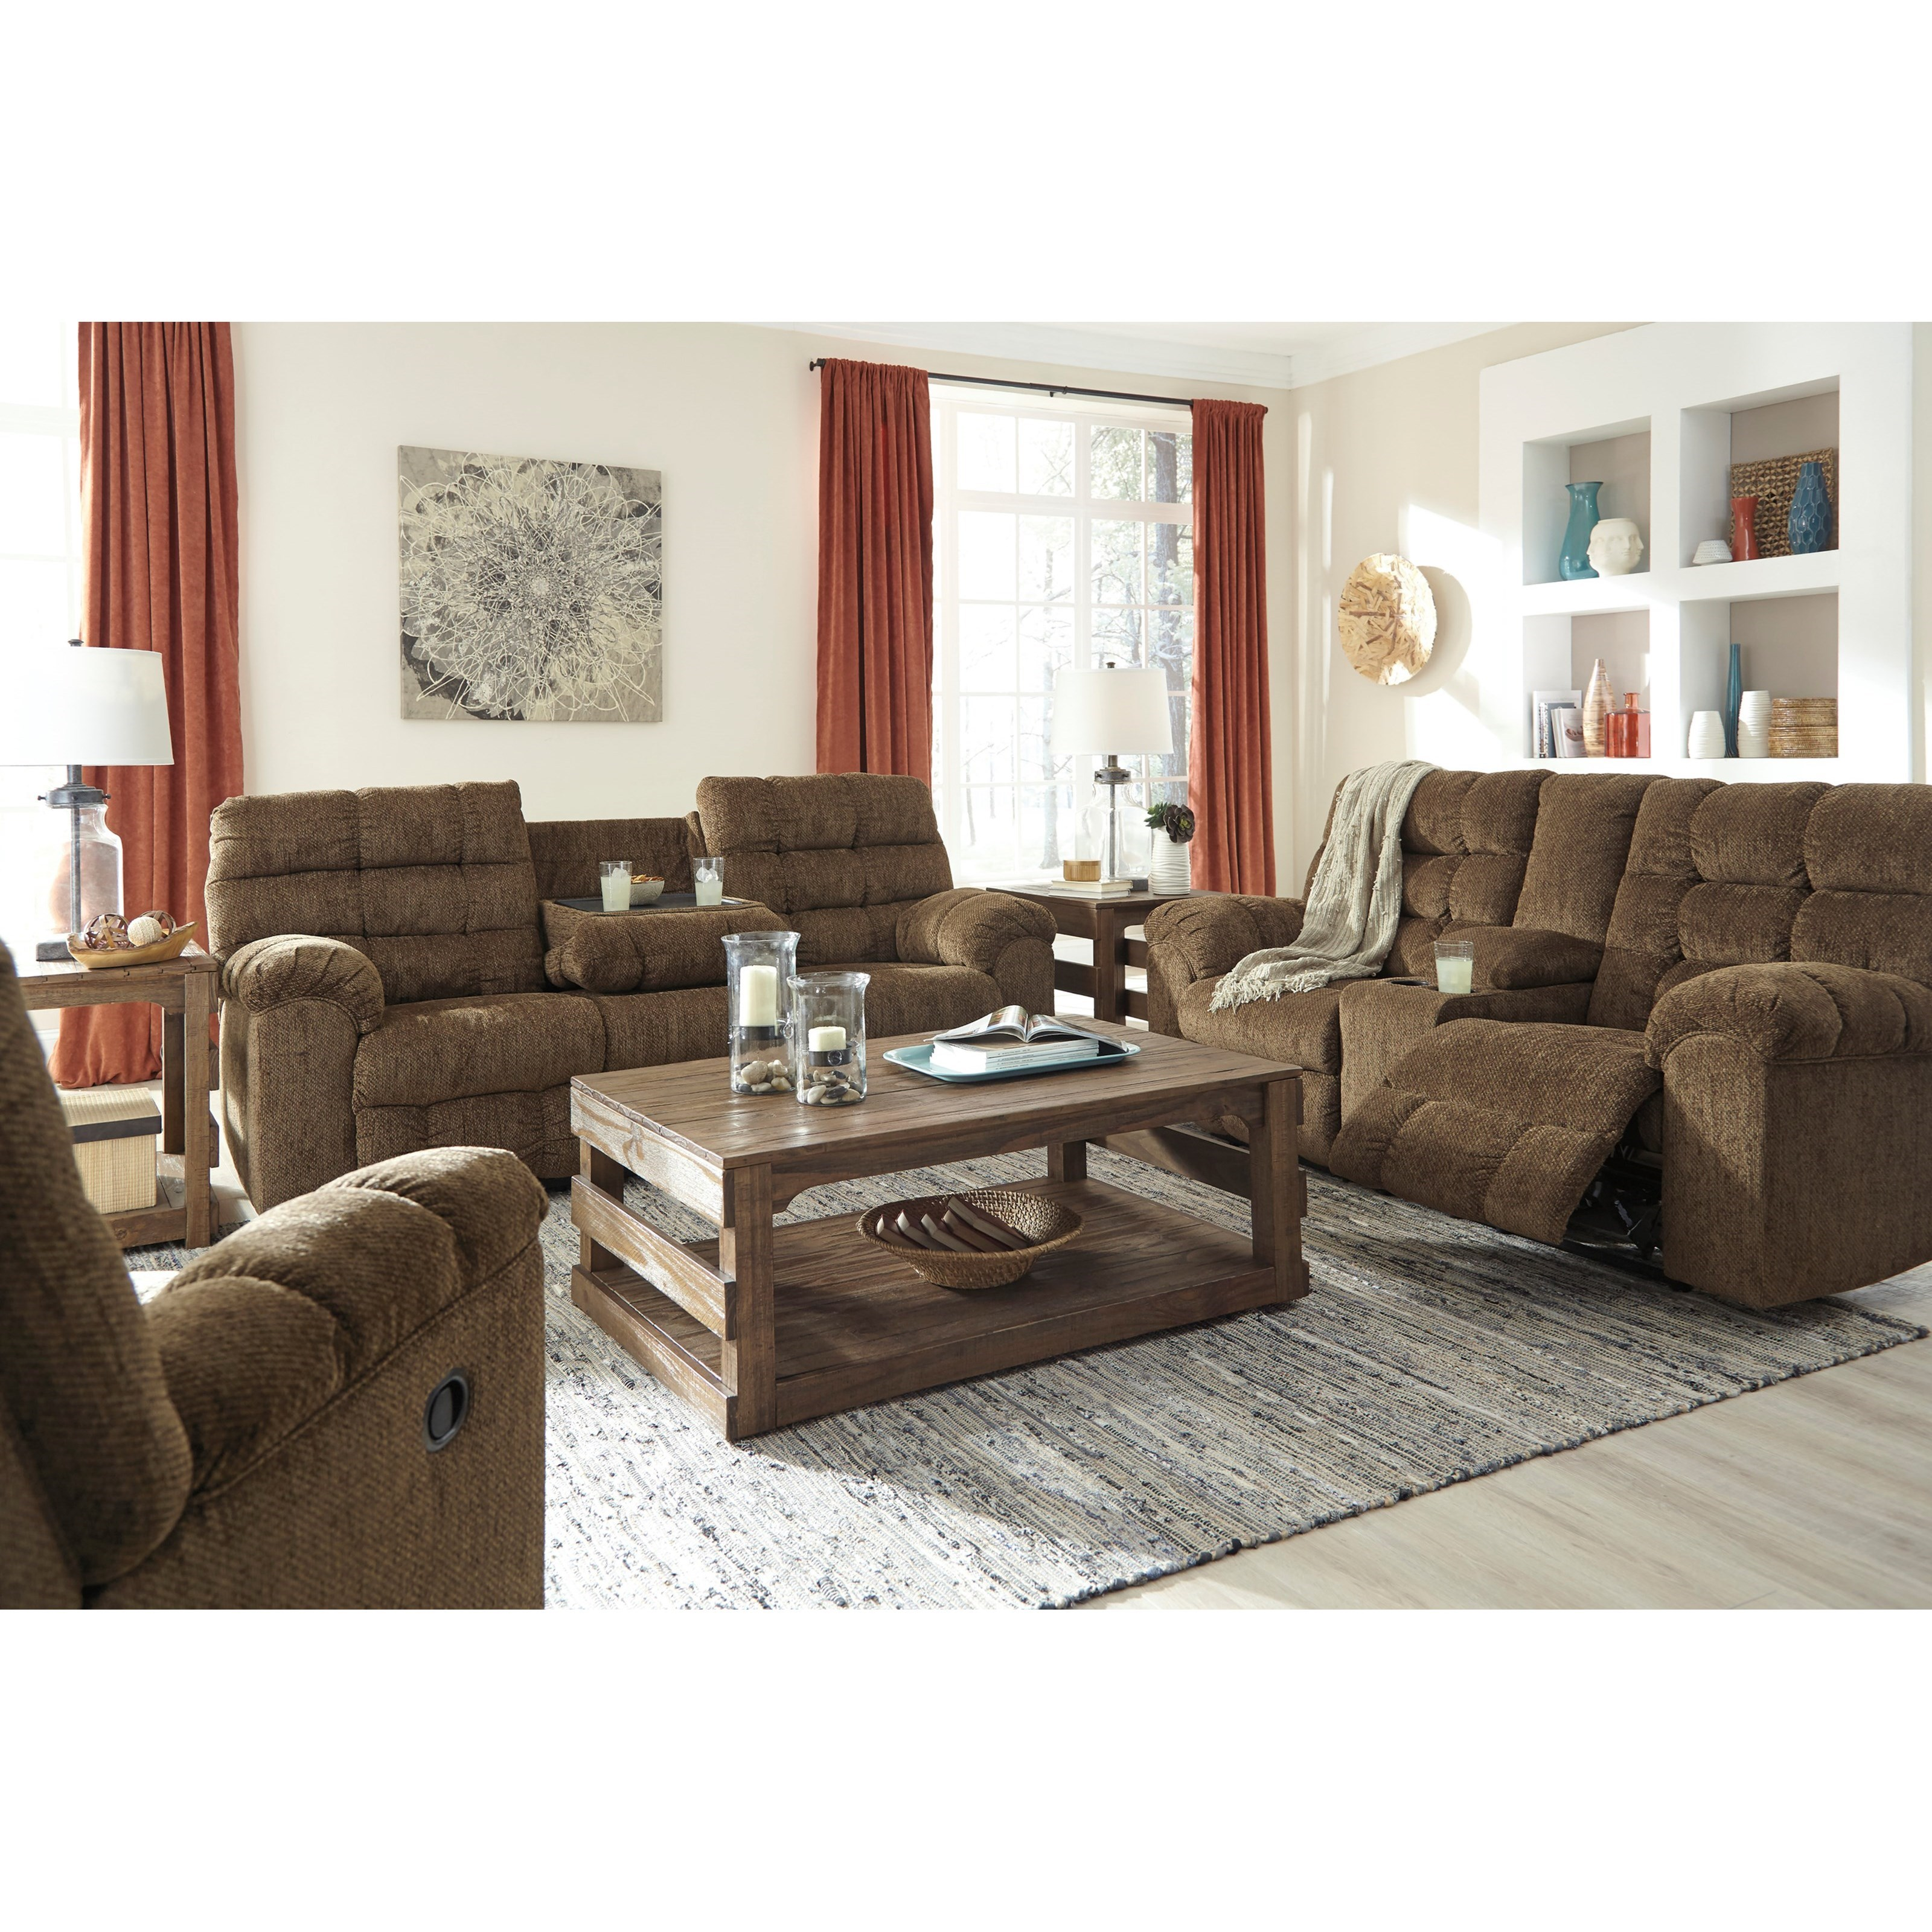 Ashley/Benchcraft Antwan Reclining Living Room Group - Item Number: 48200 Living Room Group 2